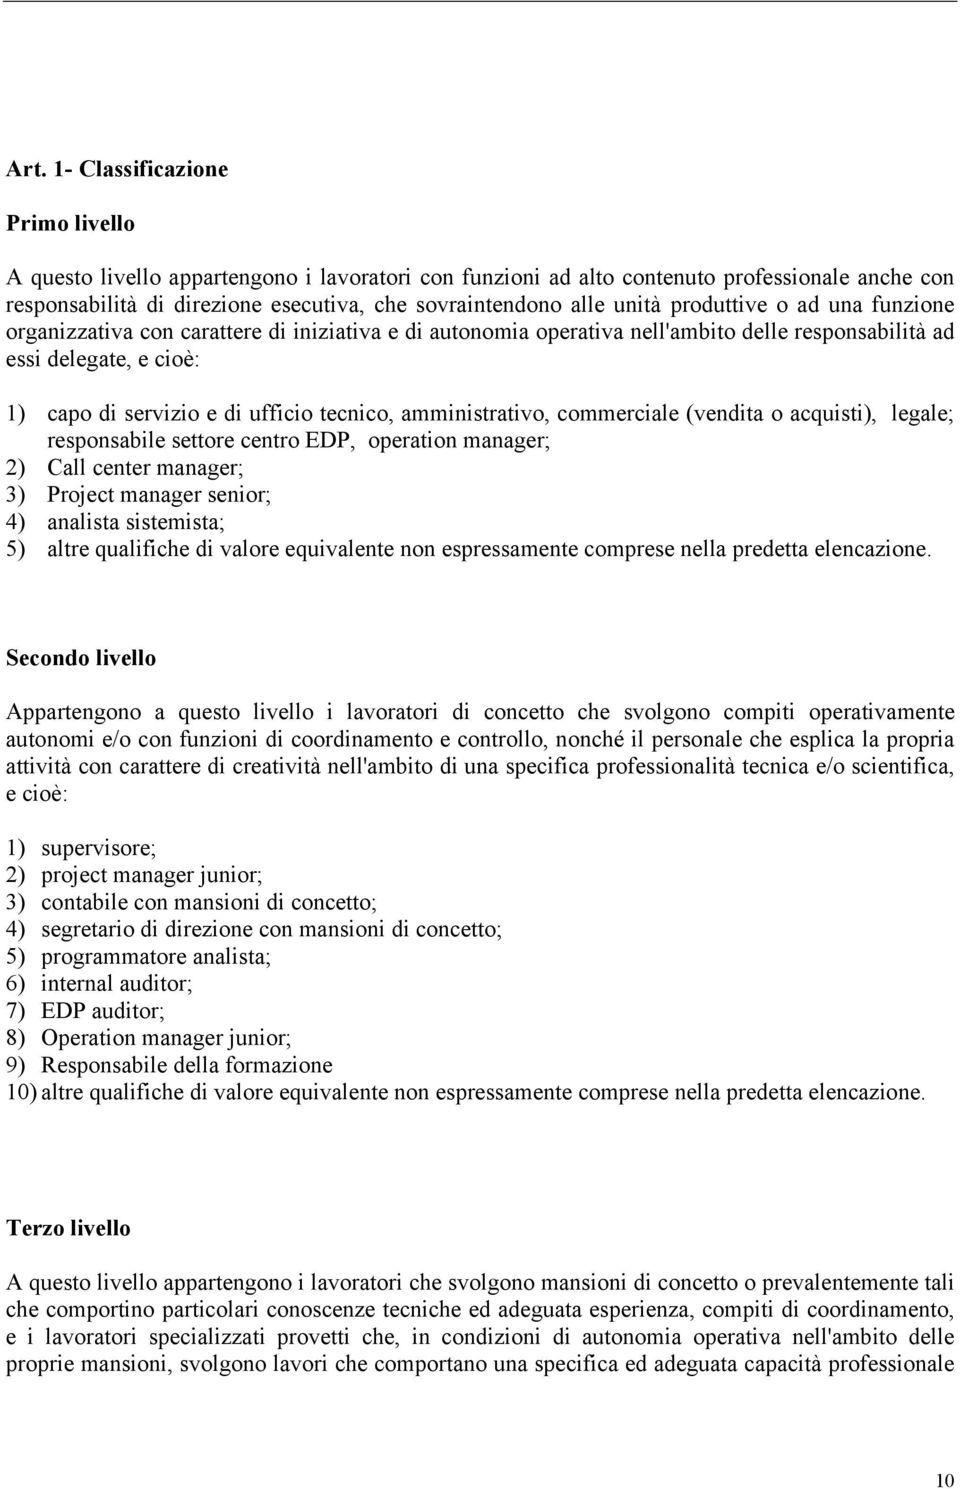 tecnico, amministrativo, commerciale (vendita o acquisti), legale; responsabile settore centro EDP, operation manager; 2) Call center manager; 3) Project manager senior; 4) analista sistemista; 5)